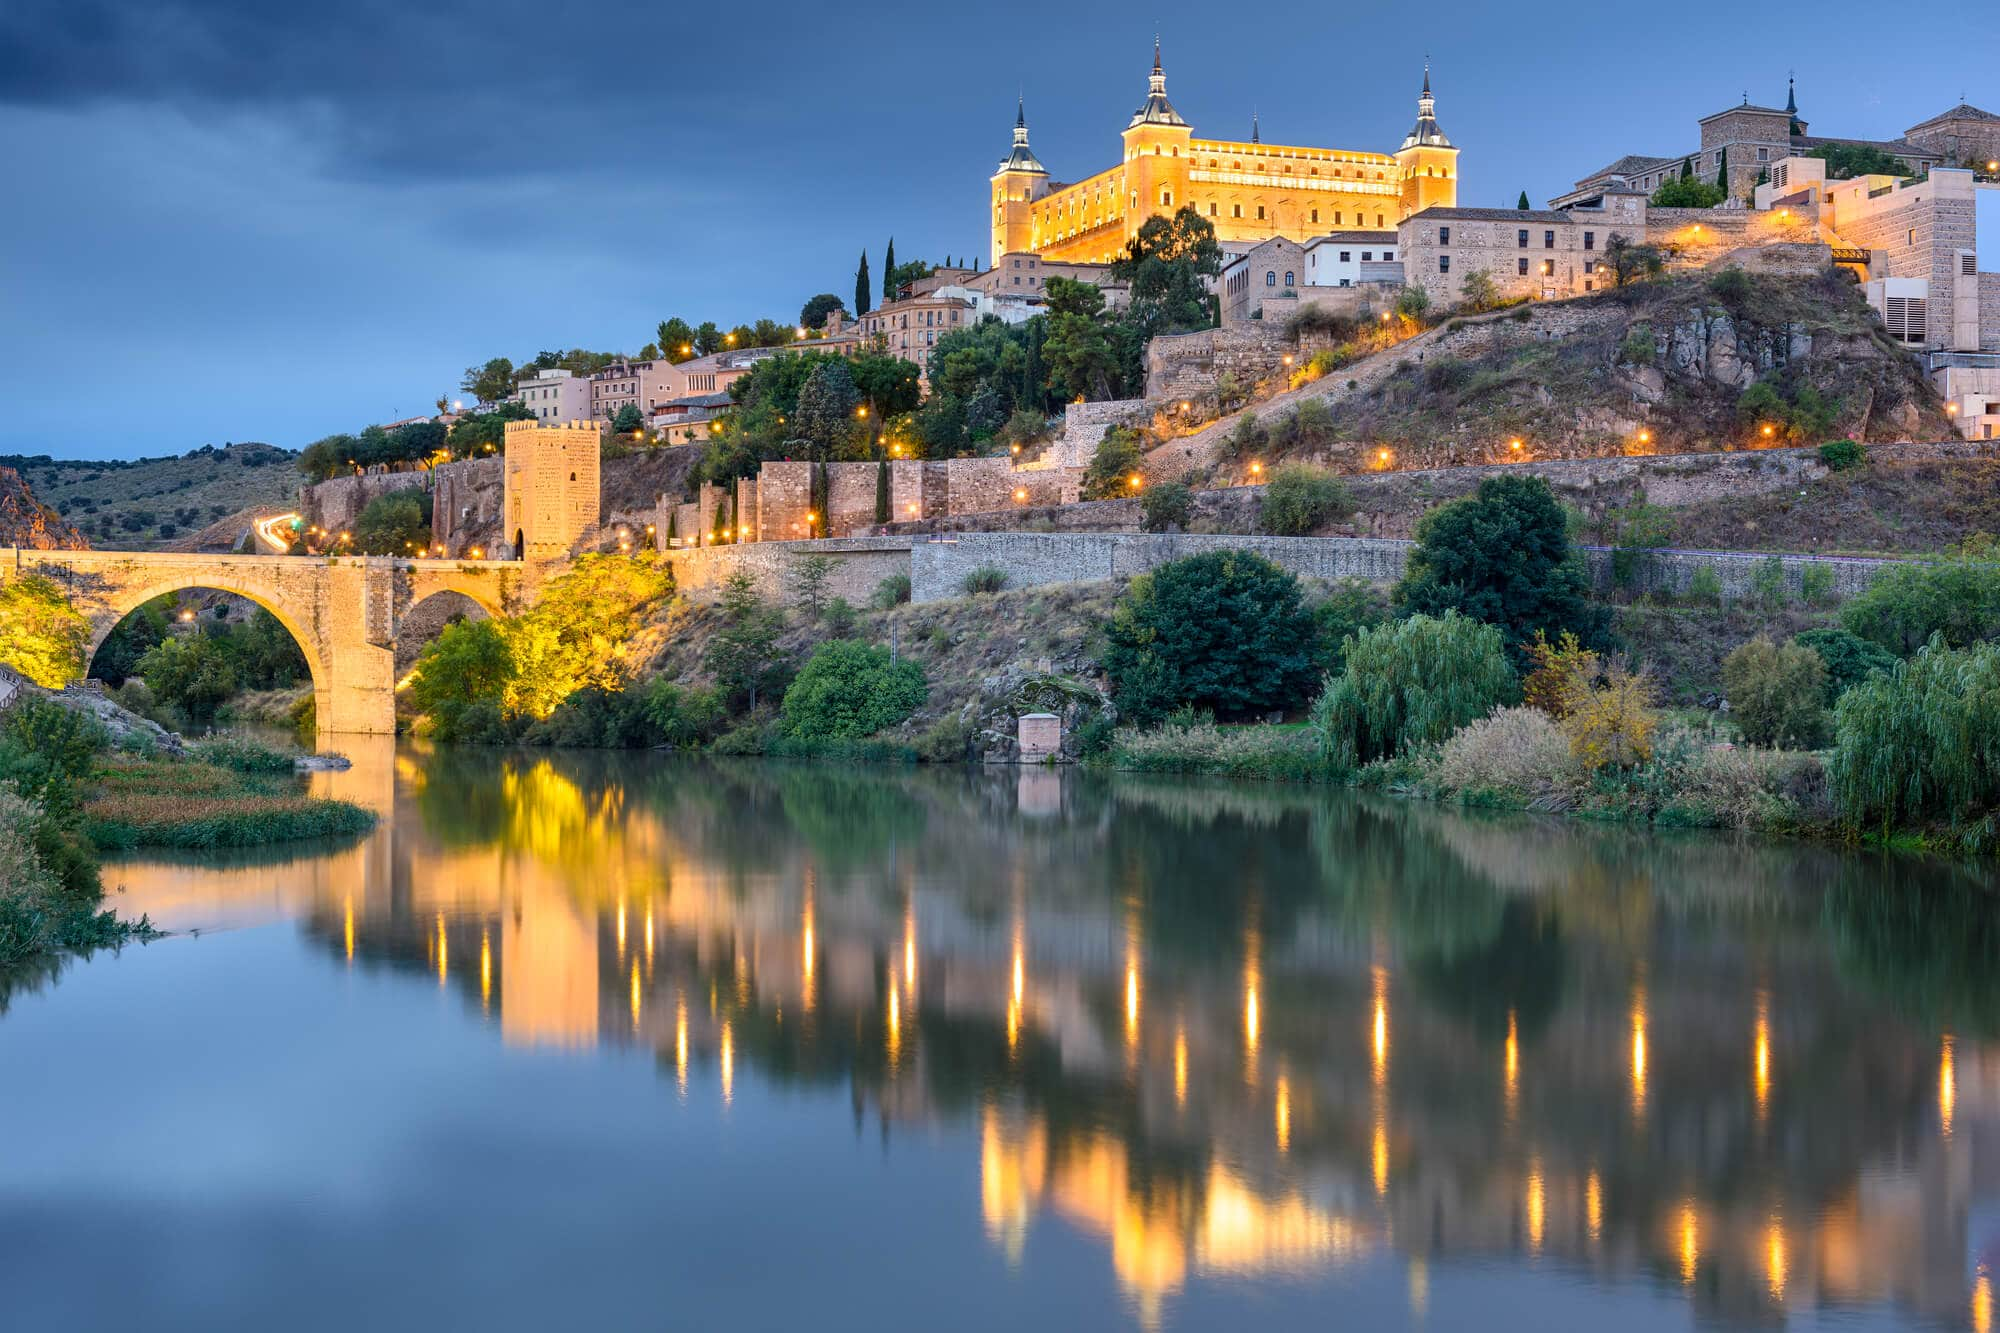 The beautiful Alcázar de Toledo lit up at dusk seen from the banks of the Tagus River - The Ultimate Spain Bucket List